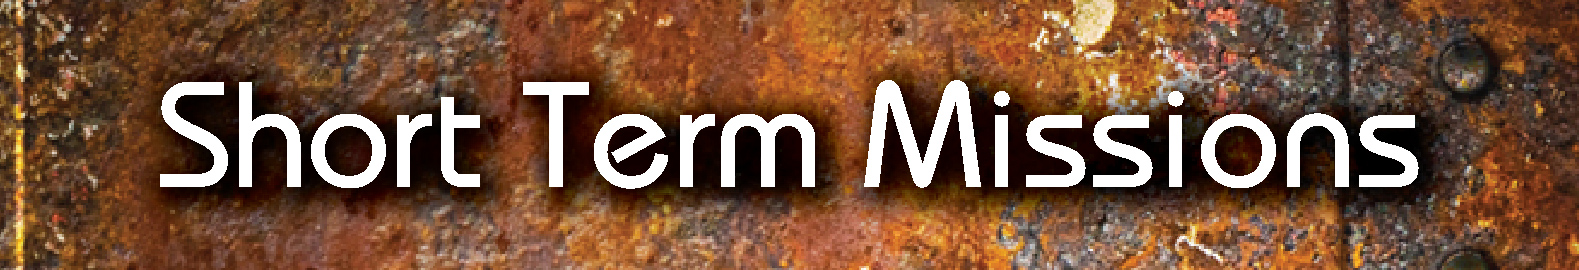 short-term-missions-header.jpg